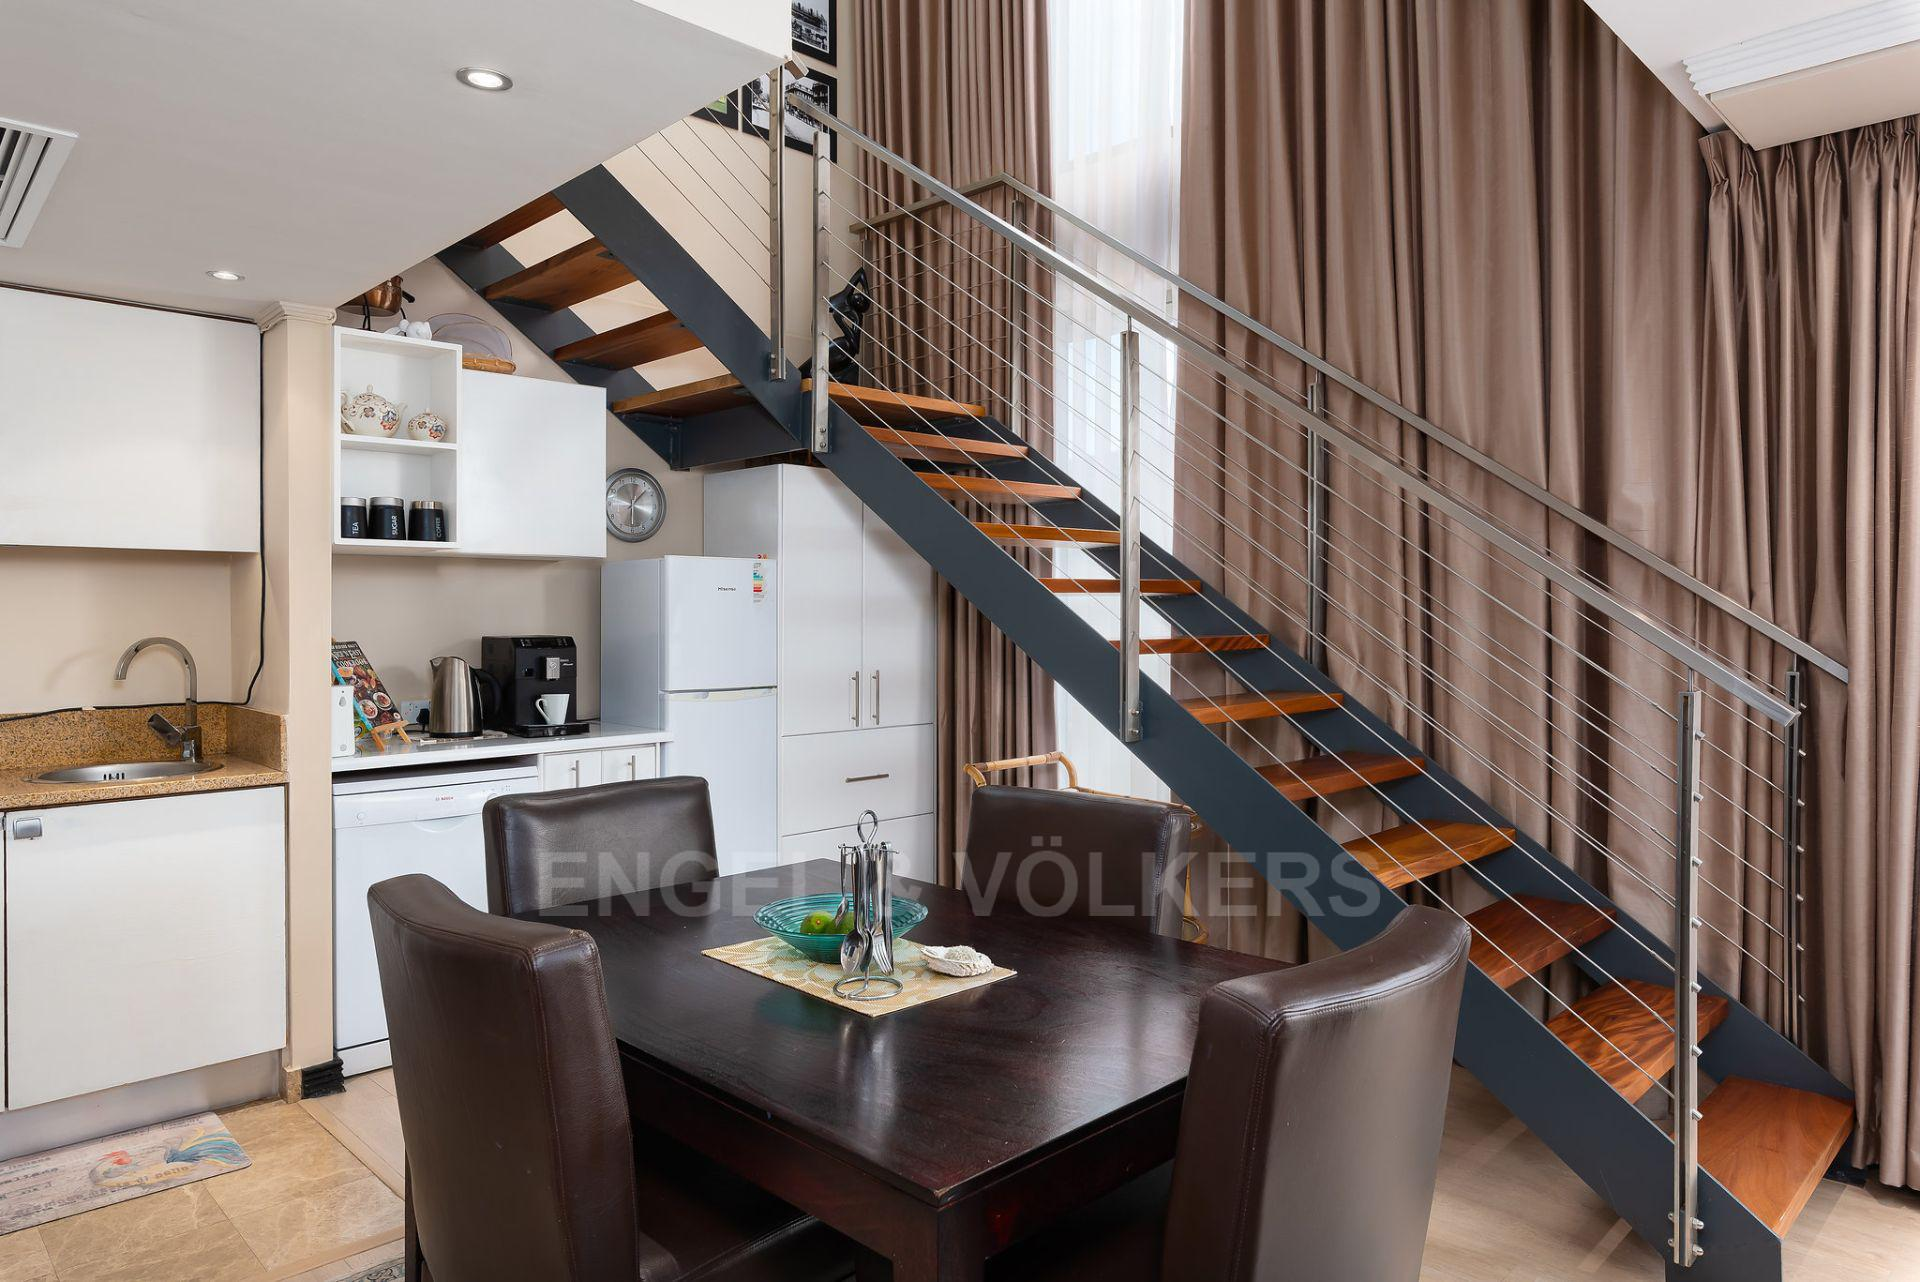 Apartment in City Centre - kitchen plus stairs.jpg